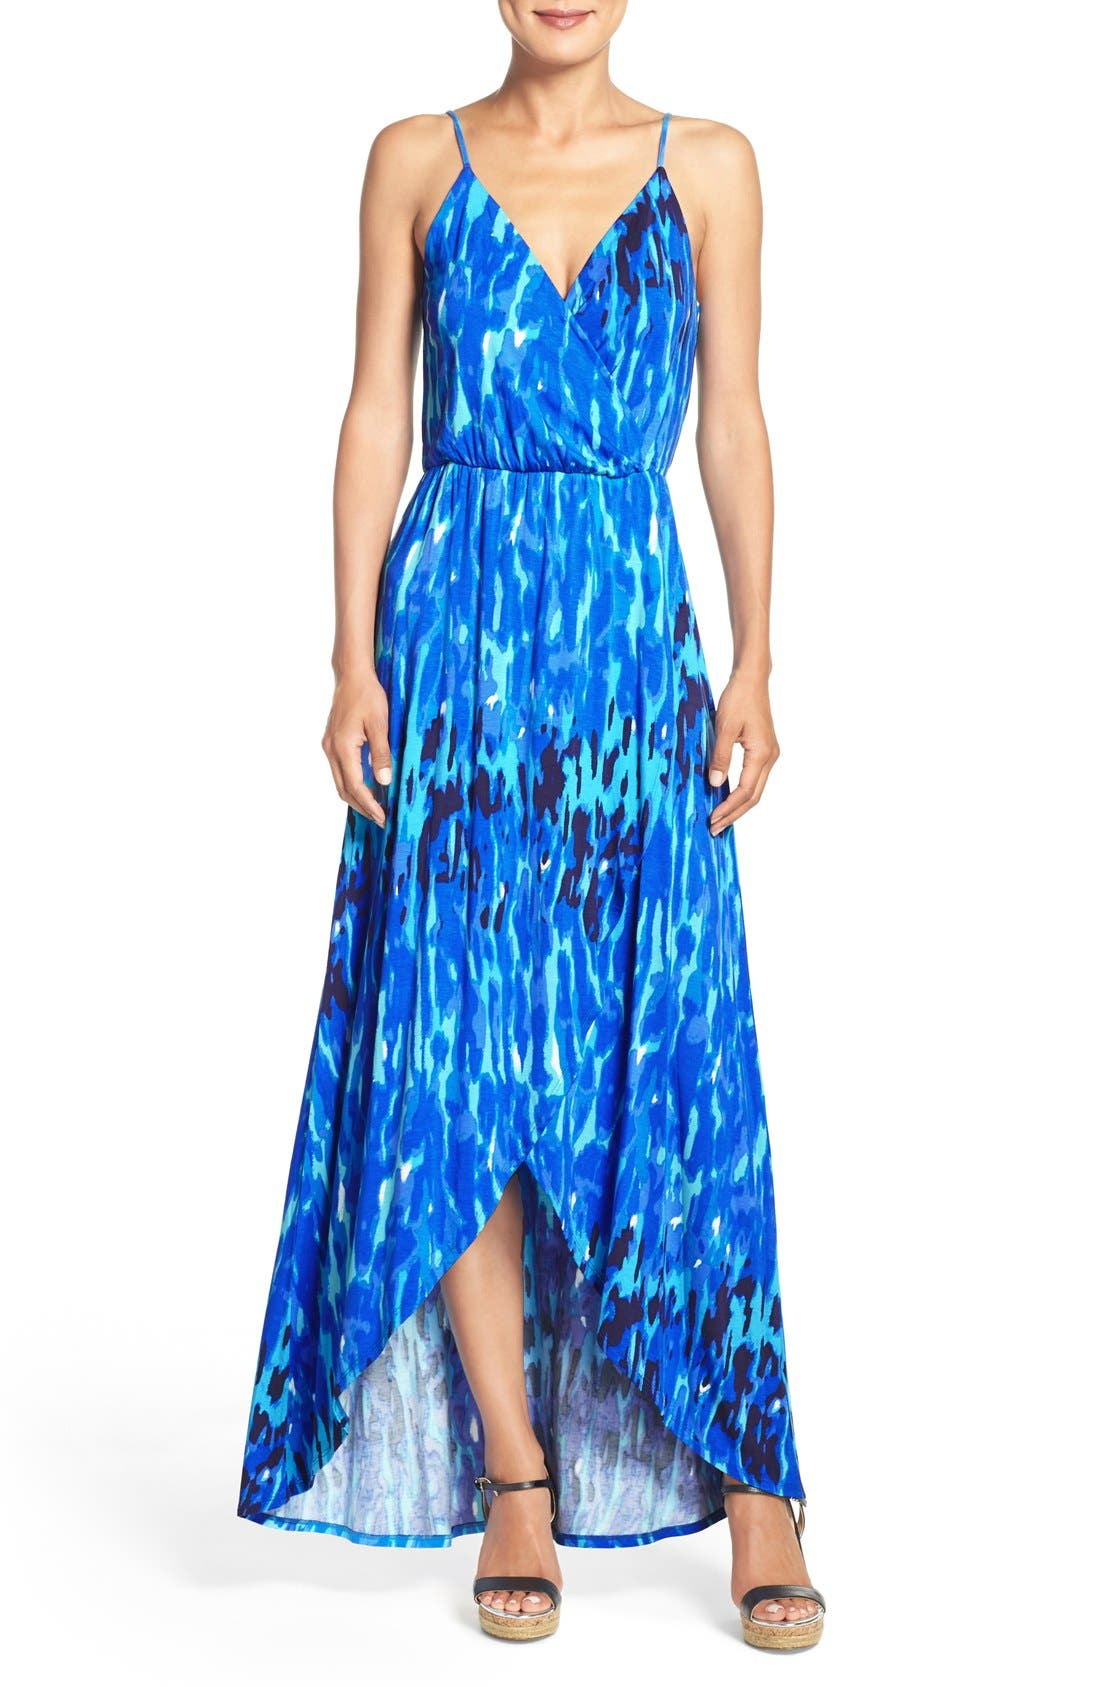 Alternate Image 1 Selected - Felicity & Coco Jersey Faux Wrap Dress (Regular & Petite) (Nordstrom Exclusive)